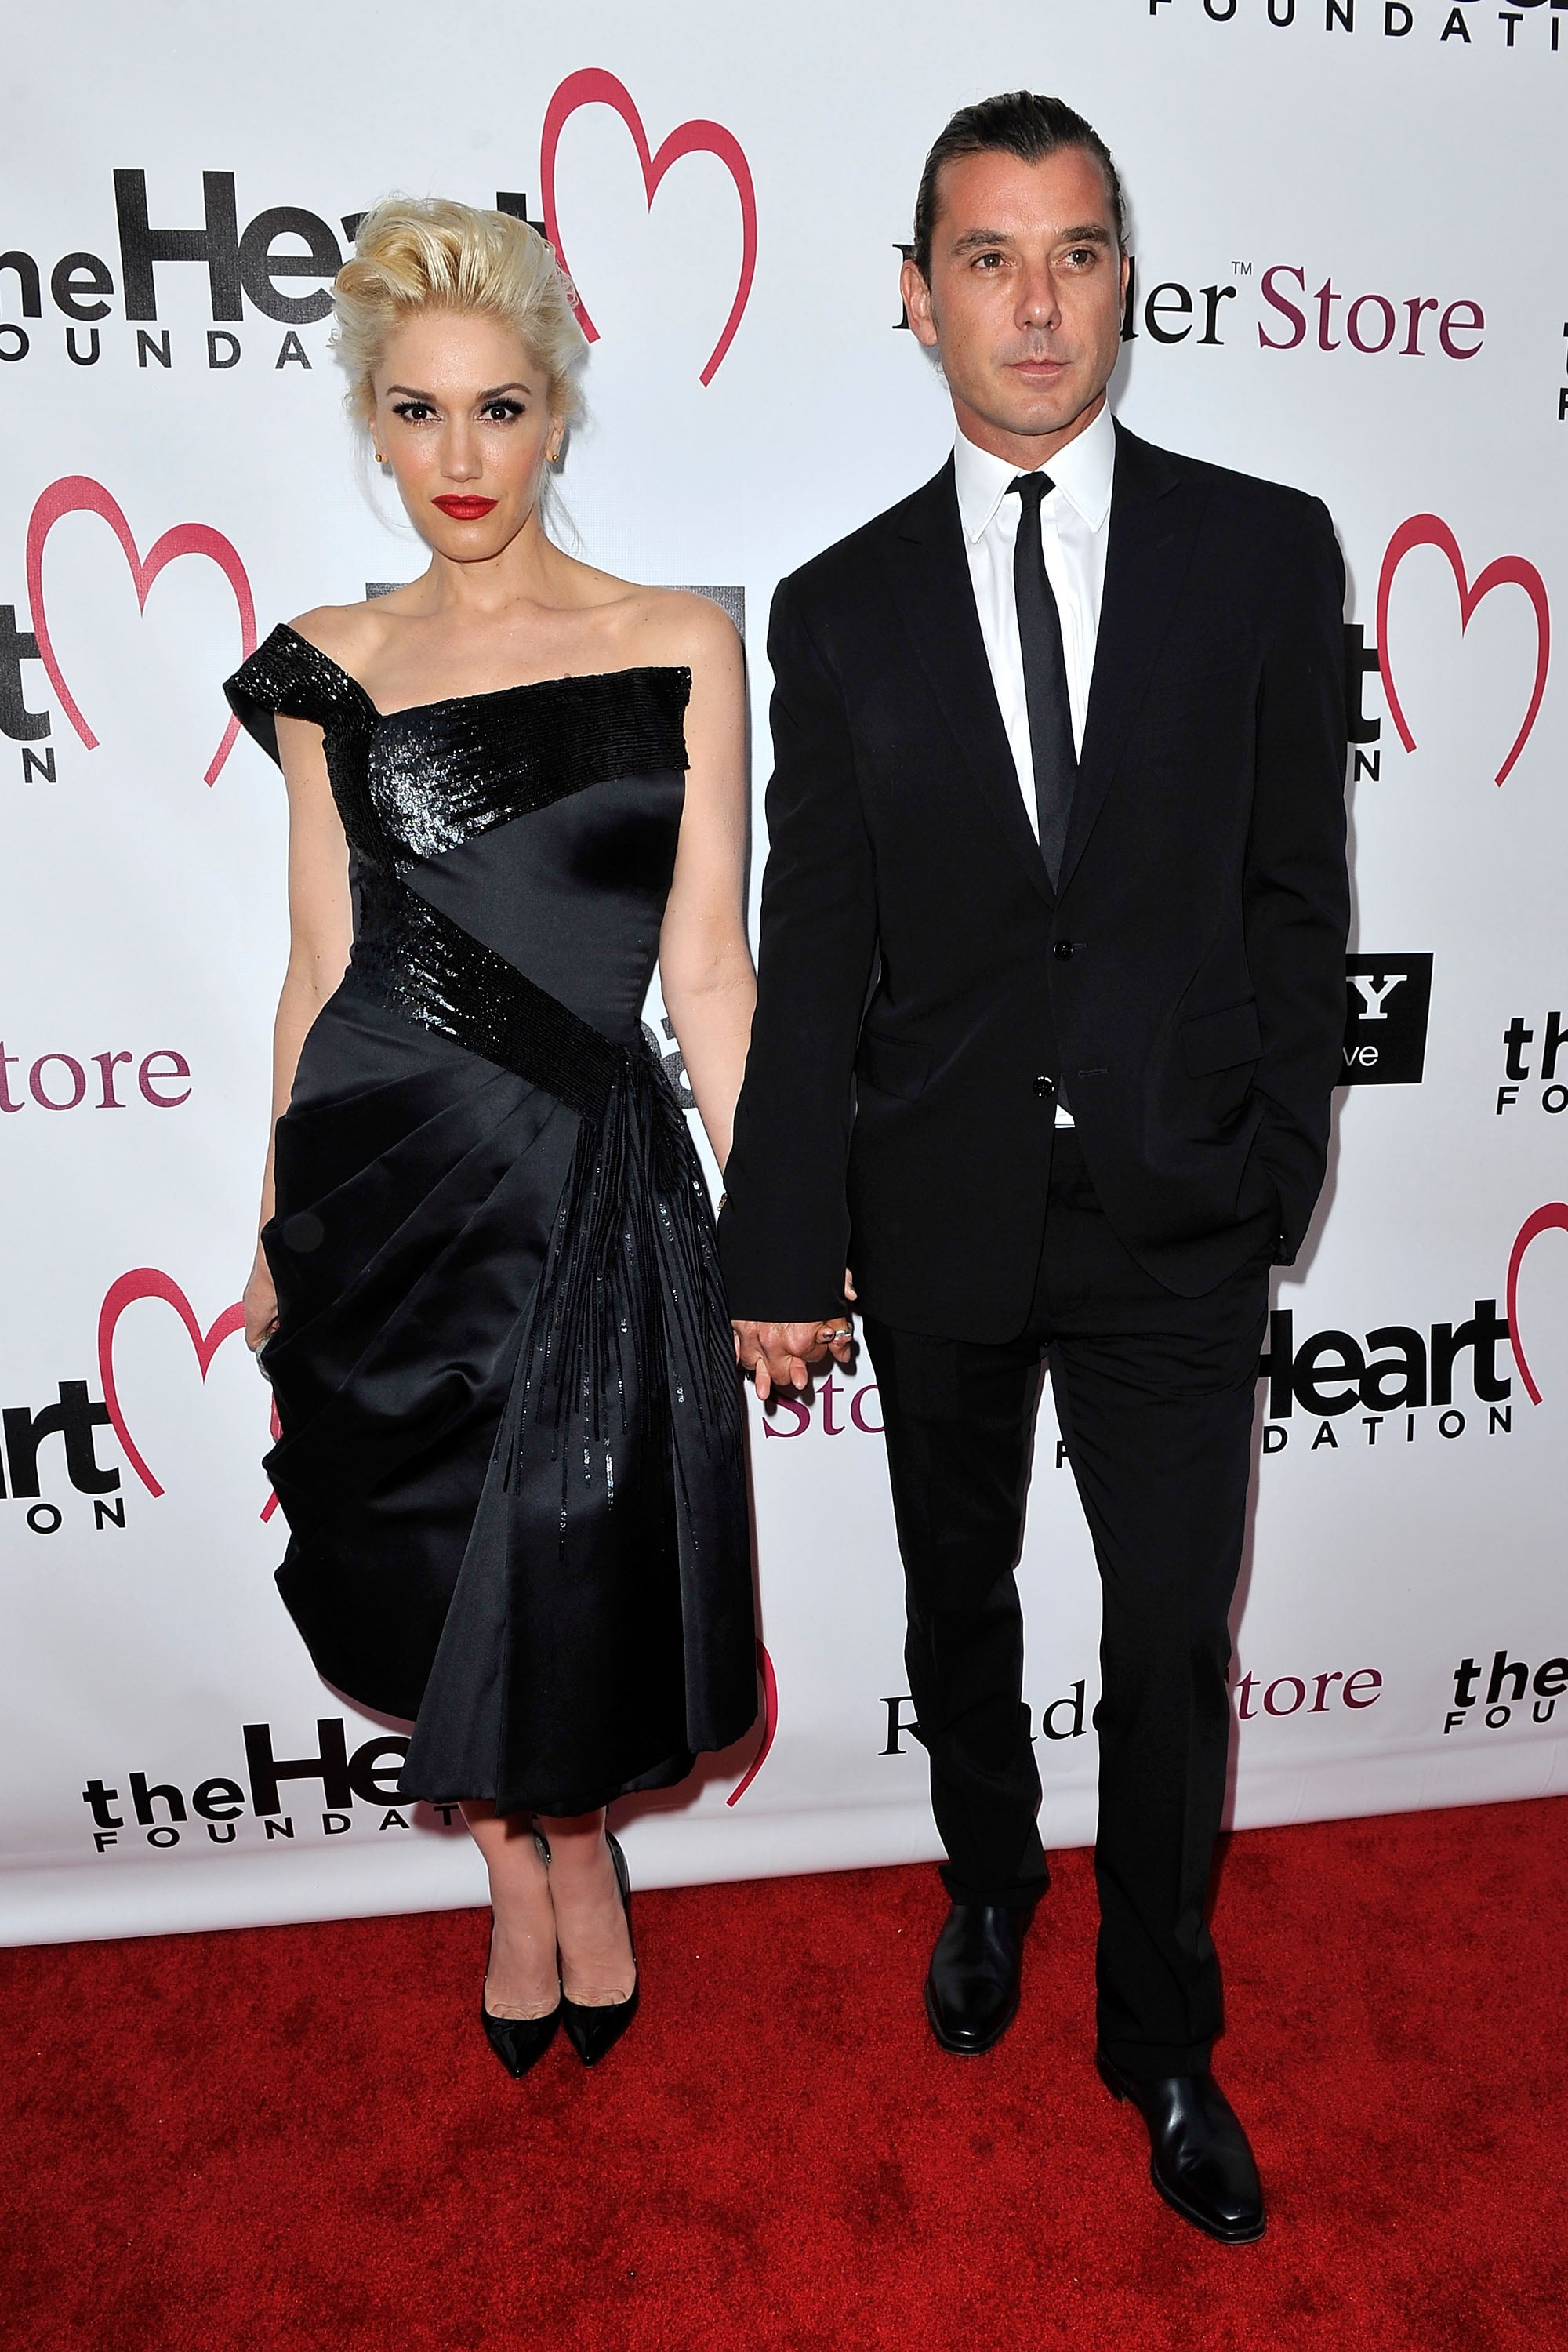 Gavin Rossdale and Gwen Stefani stopped for a photo.